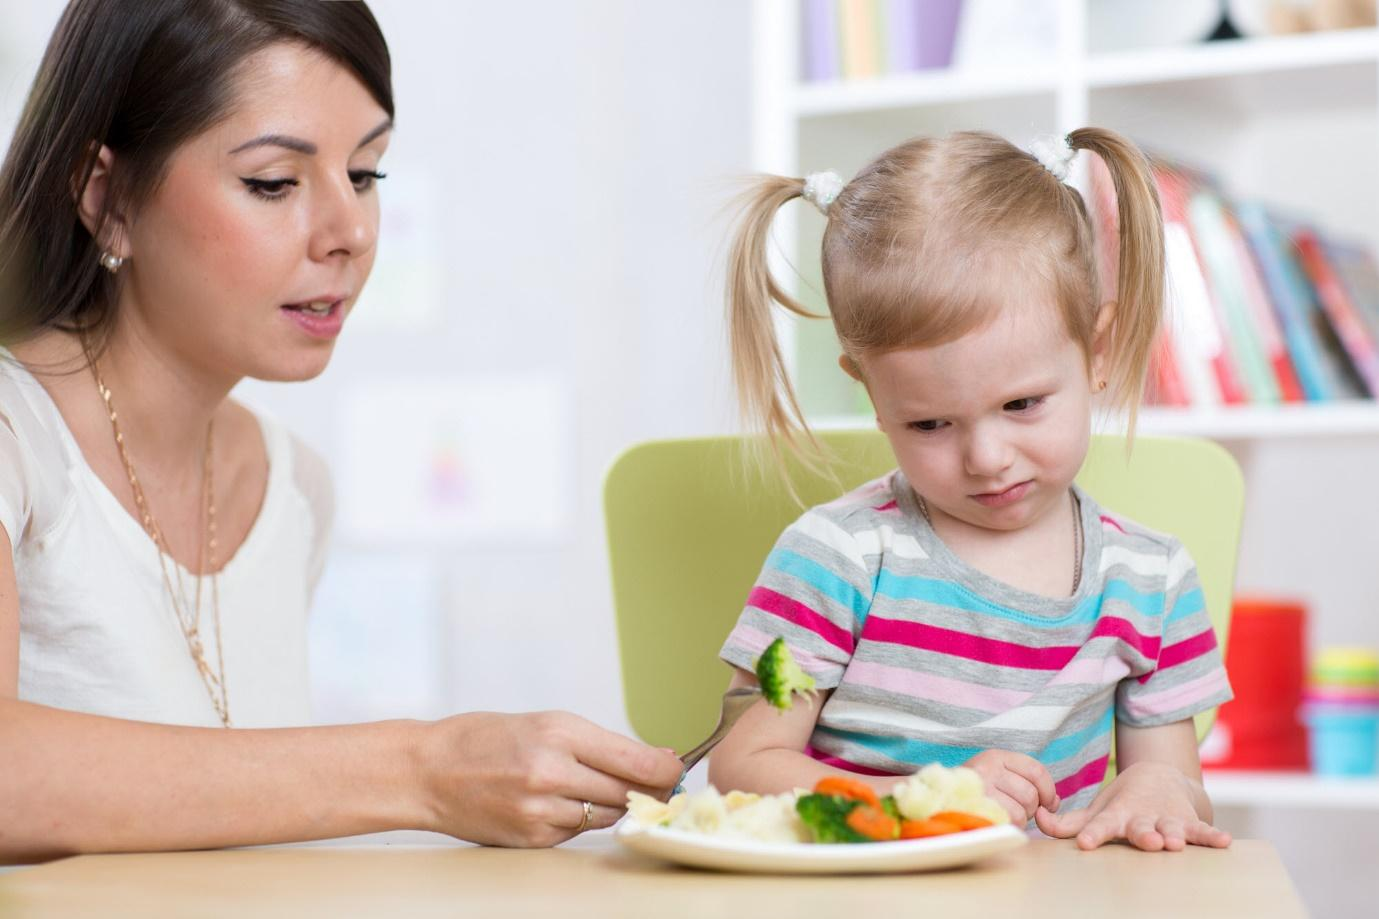 A person feeding a child a piece of food  Description automatically generated with low confidence